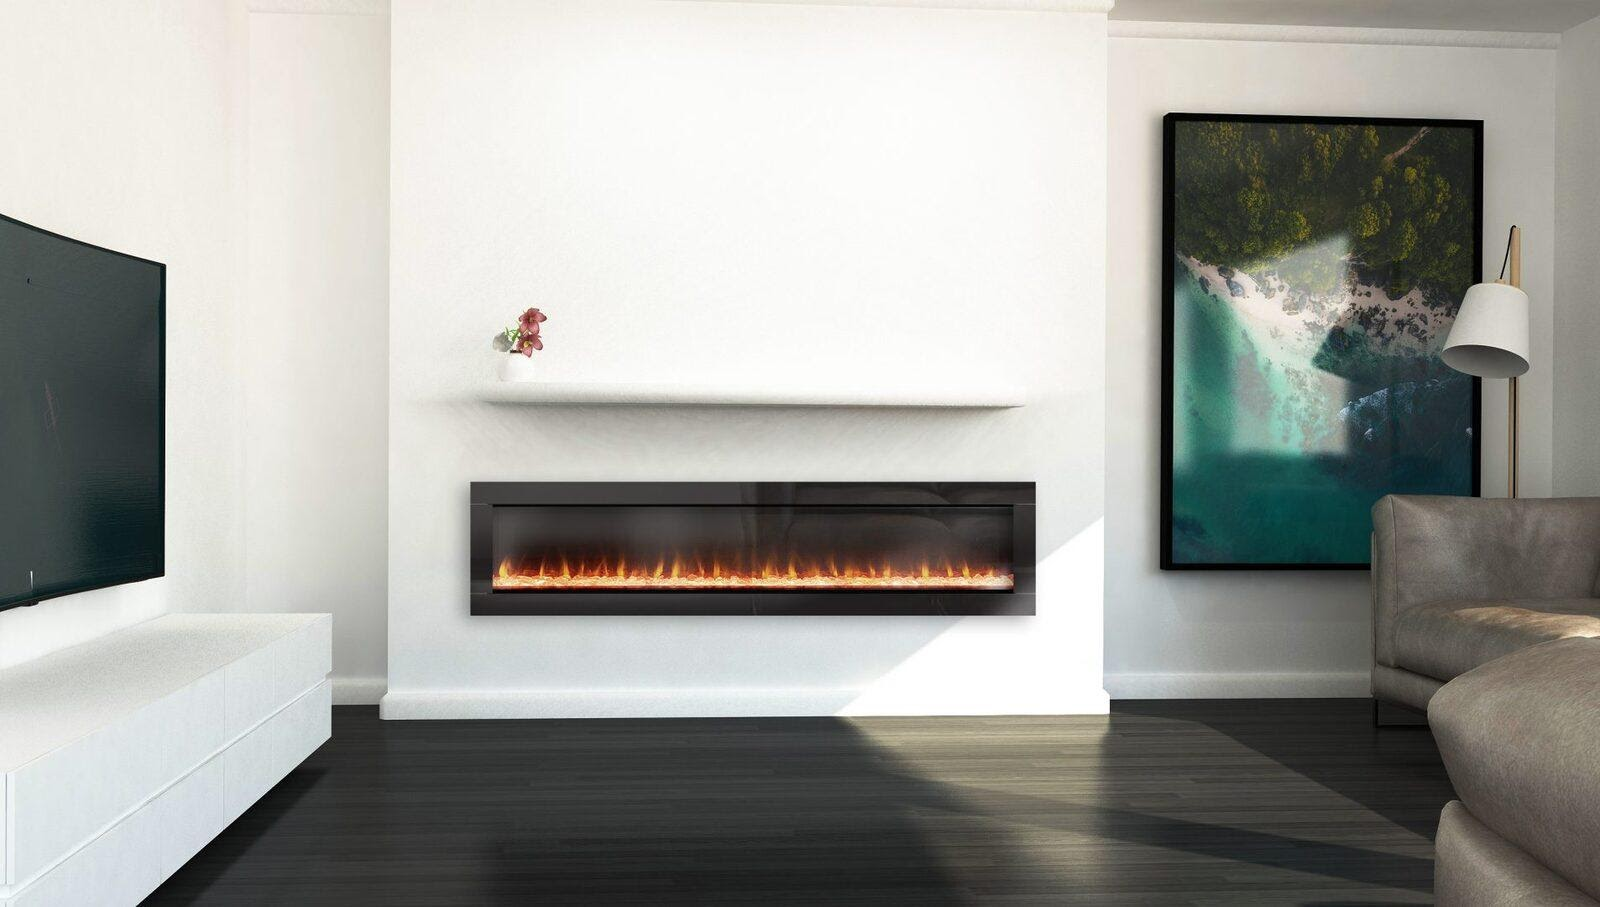 Some Cozy Advantages Of An Electric Fireplace